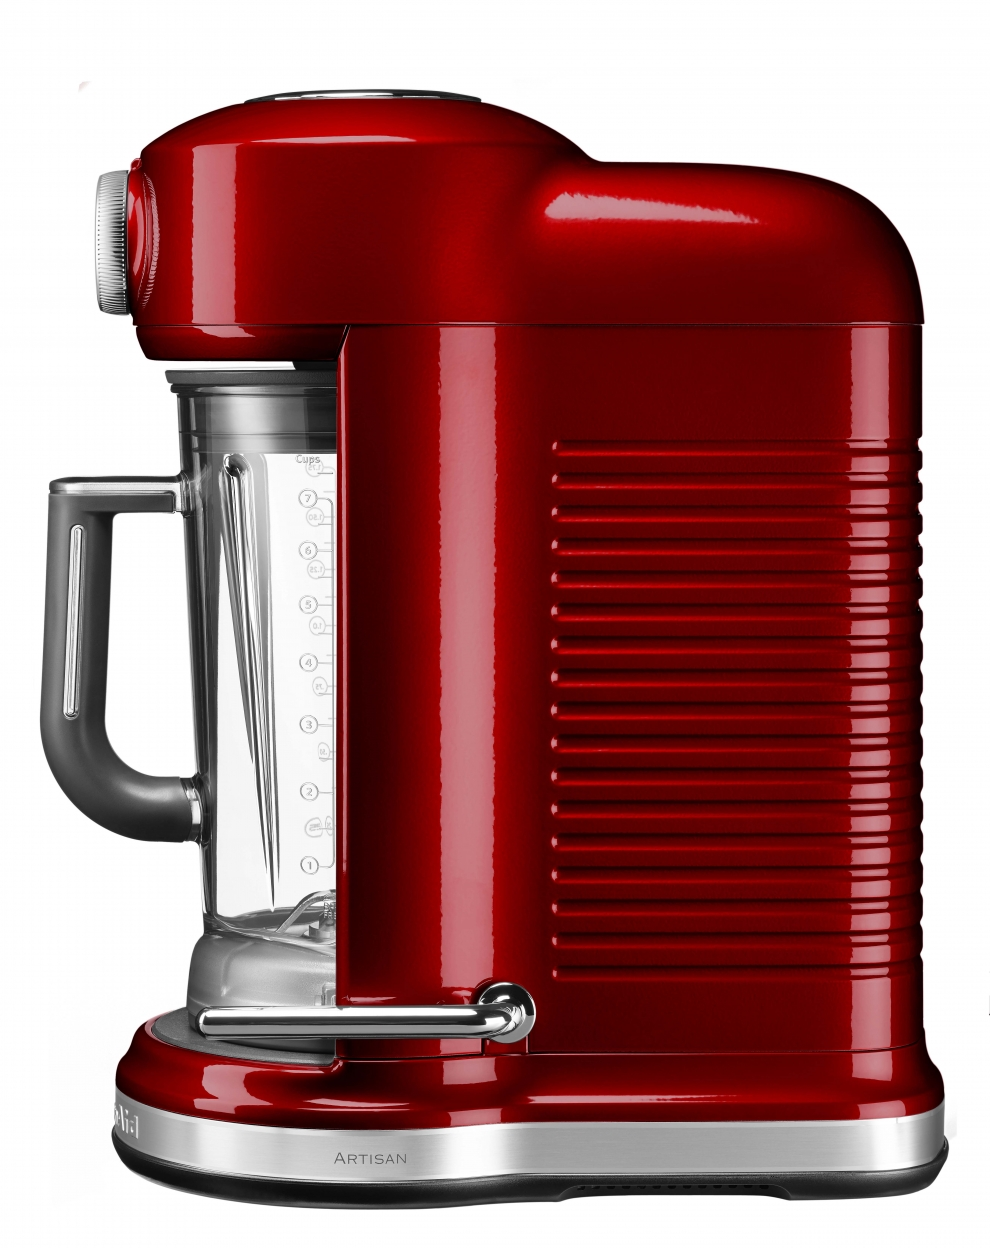 kitchenaid blender mixeur artisan torrent rouge pomme d